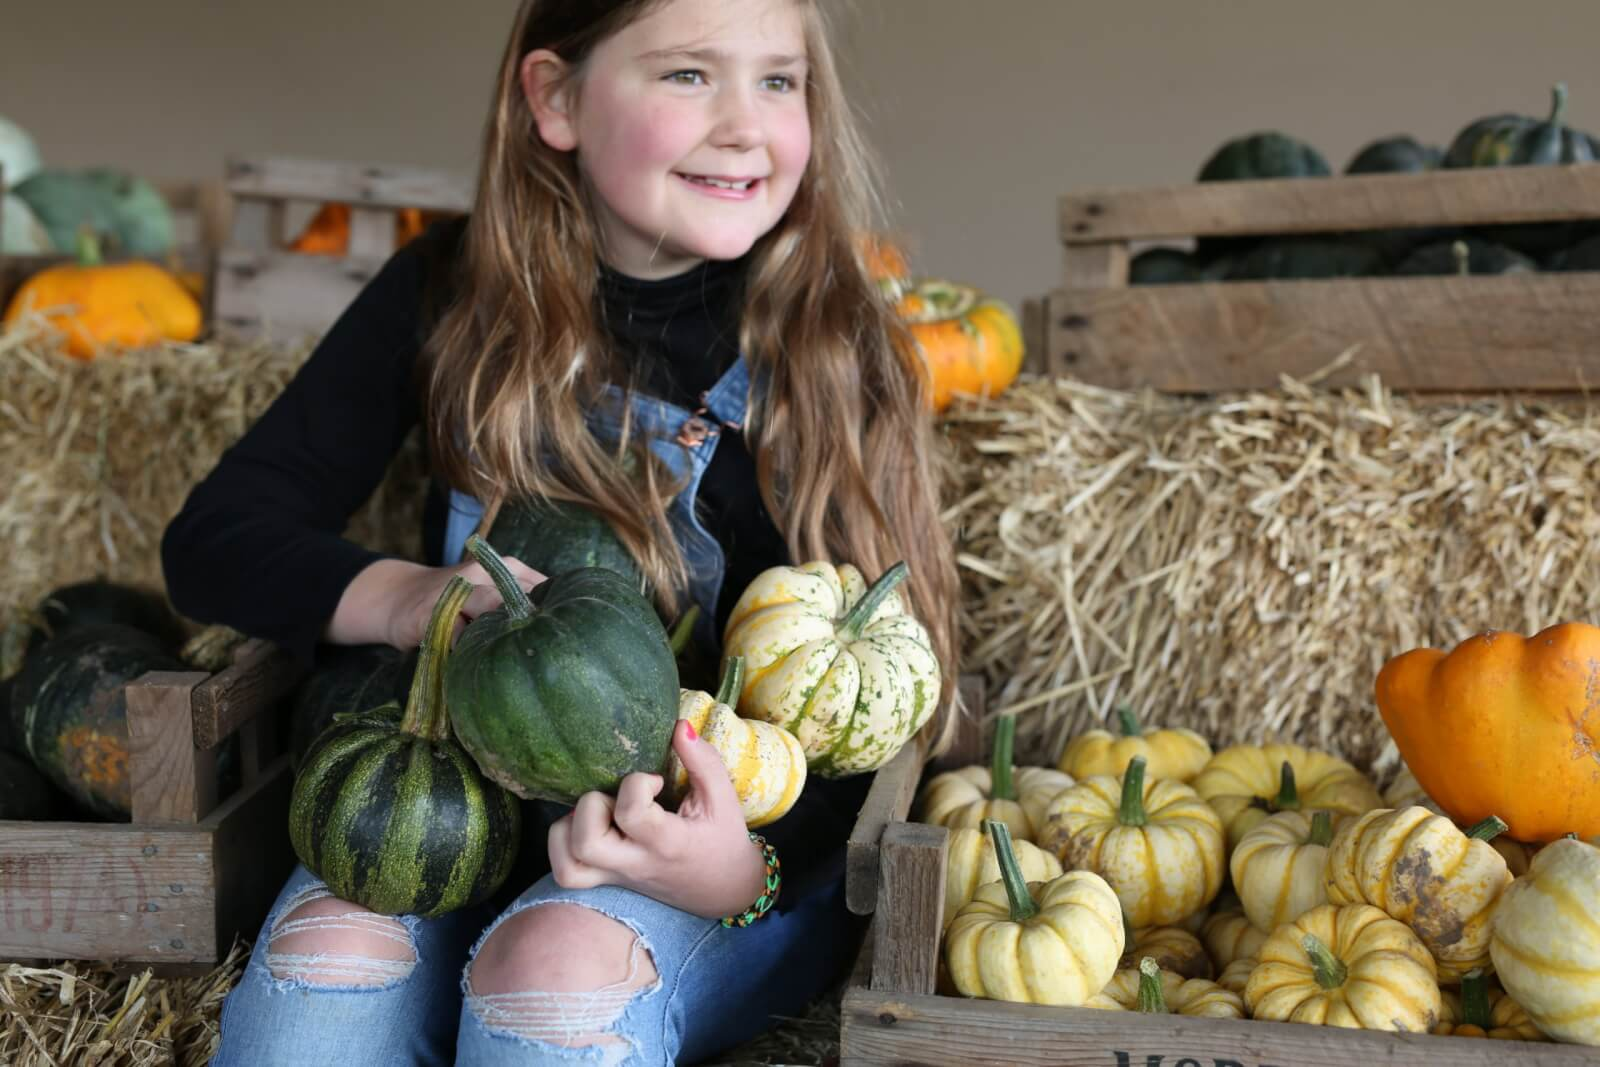 Smiling child holding various Pumpkins from our East Lothian Pumpkin Patch